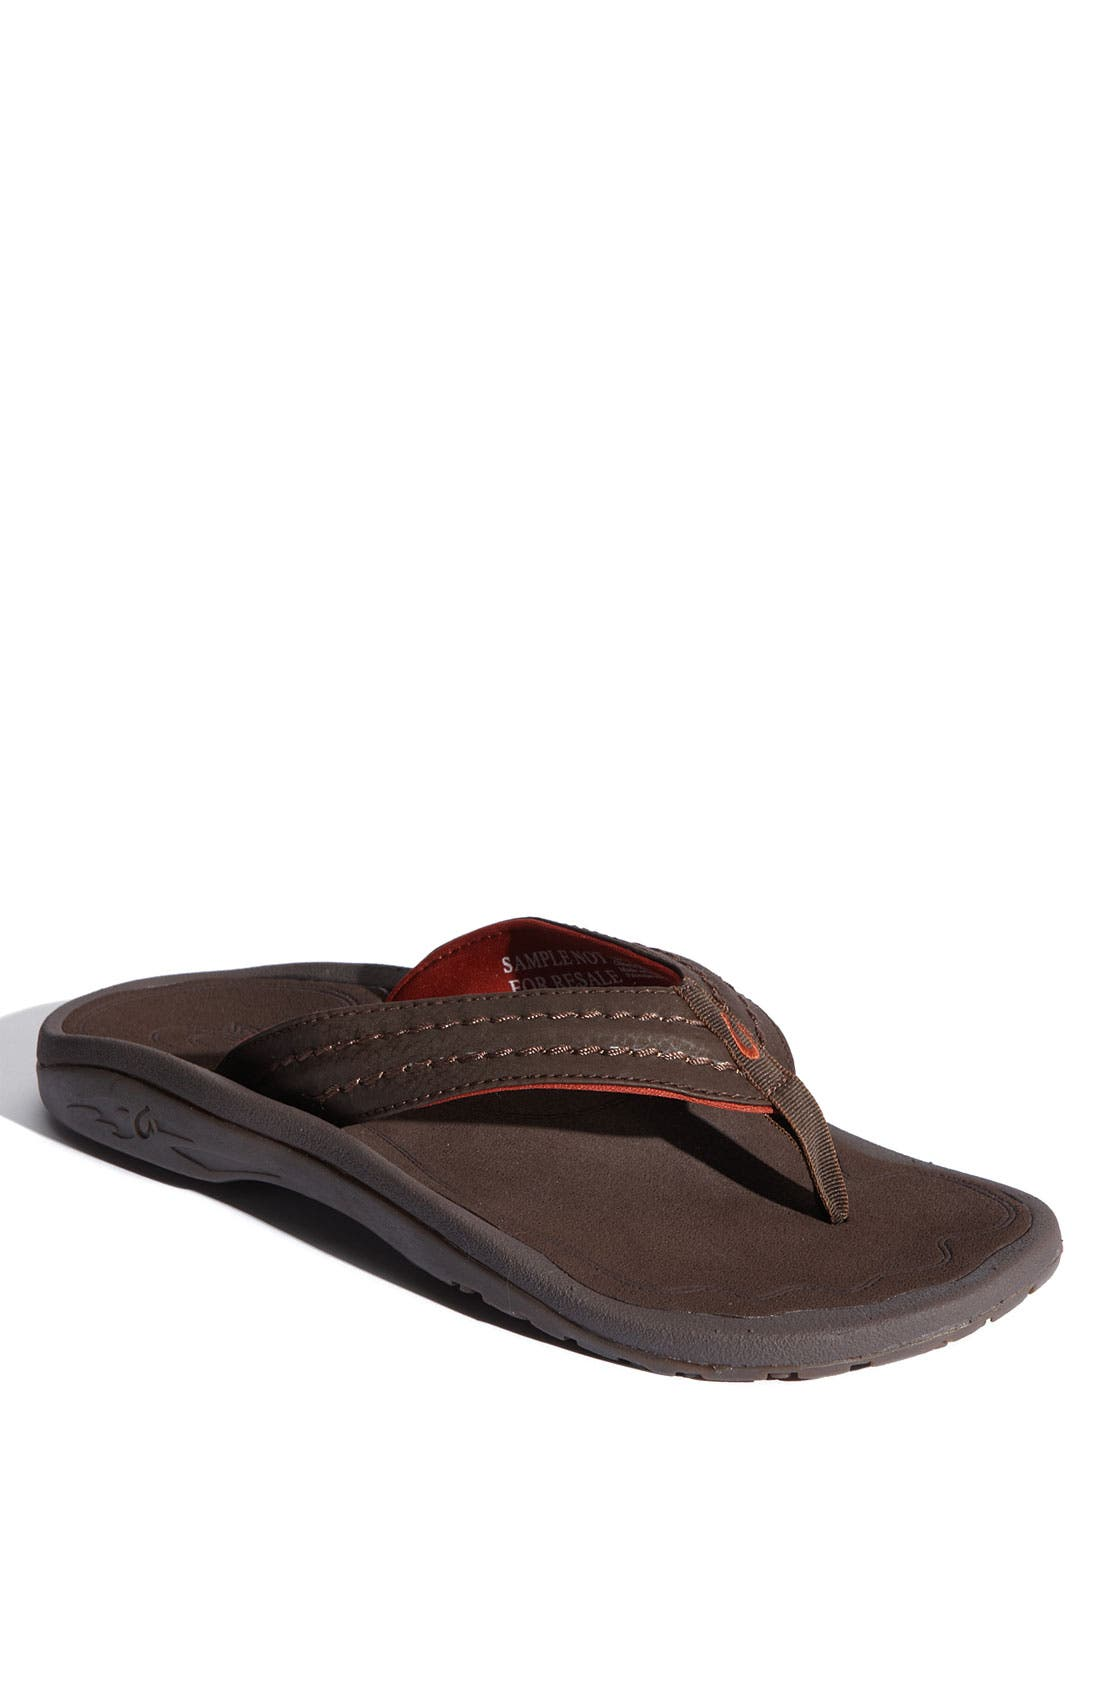 Hokua Flip Flop,                             Main thumbnail 1, color,                             Dark Java Faux Leather